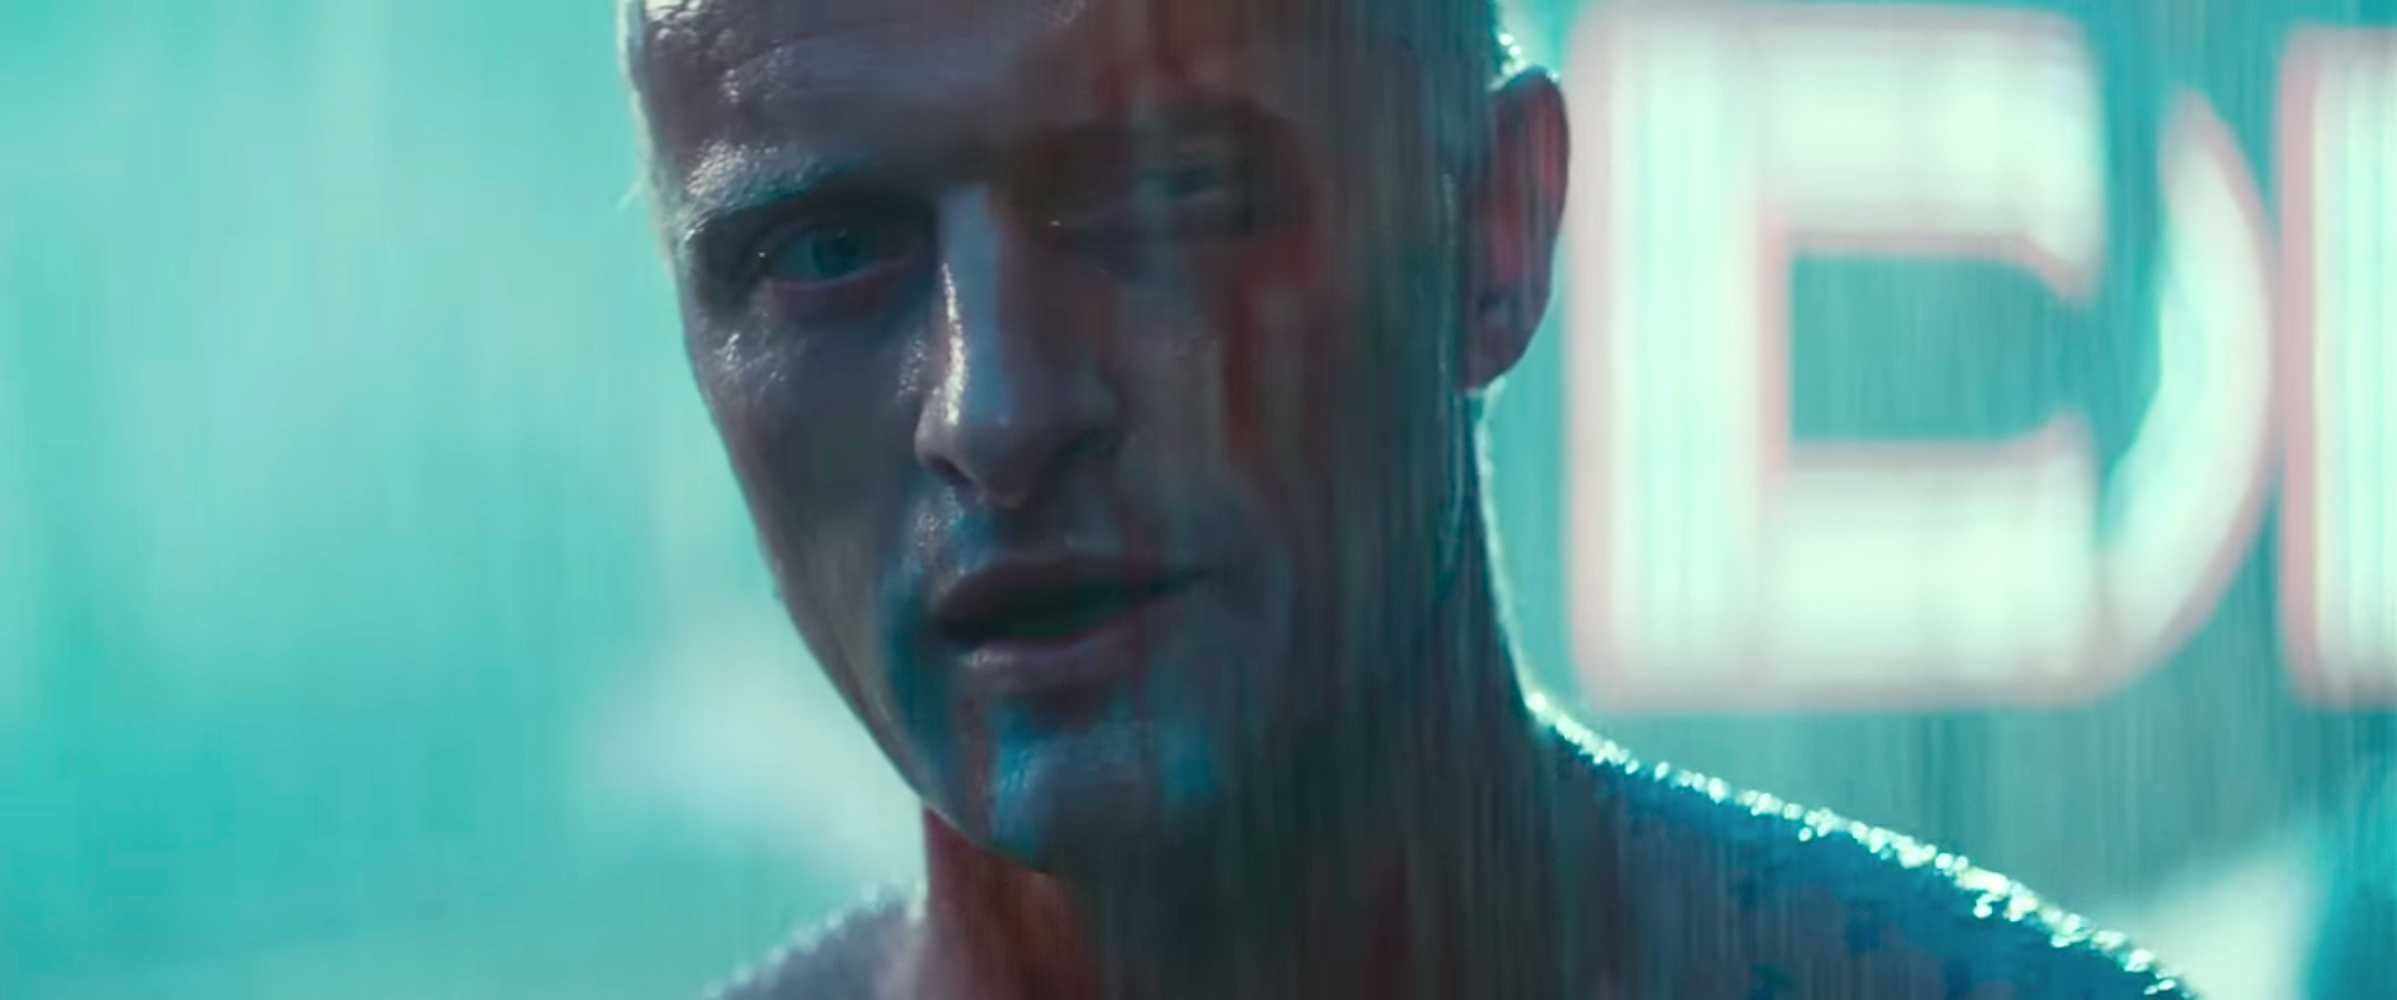 Rutger Hauer's 'Tears In The Rain' Speech From Blade Runner Is An Iconic, Improvised Moment In Film History